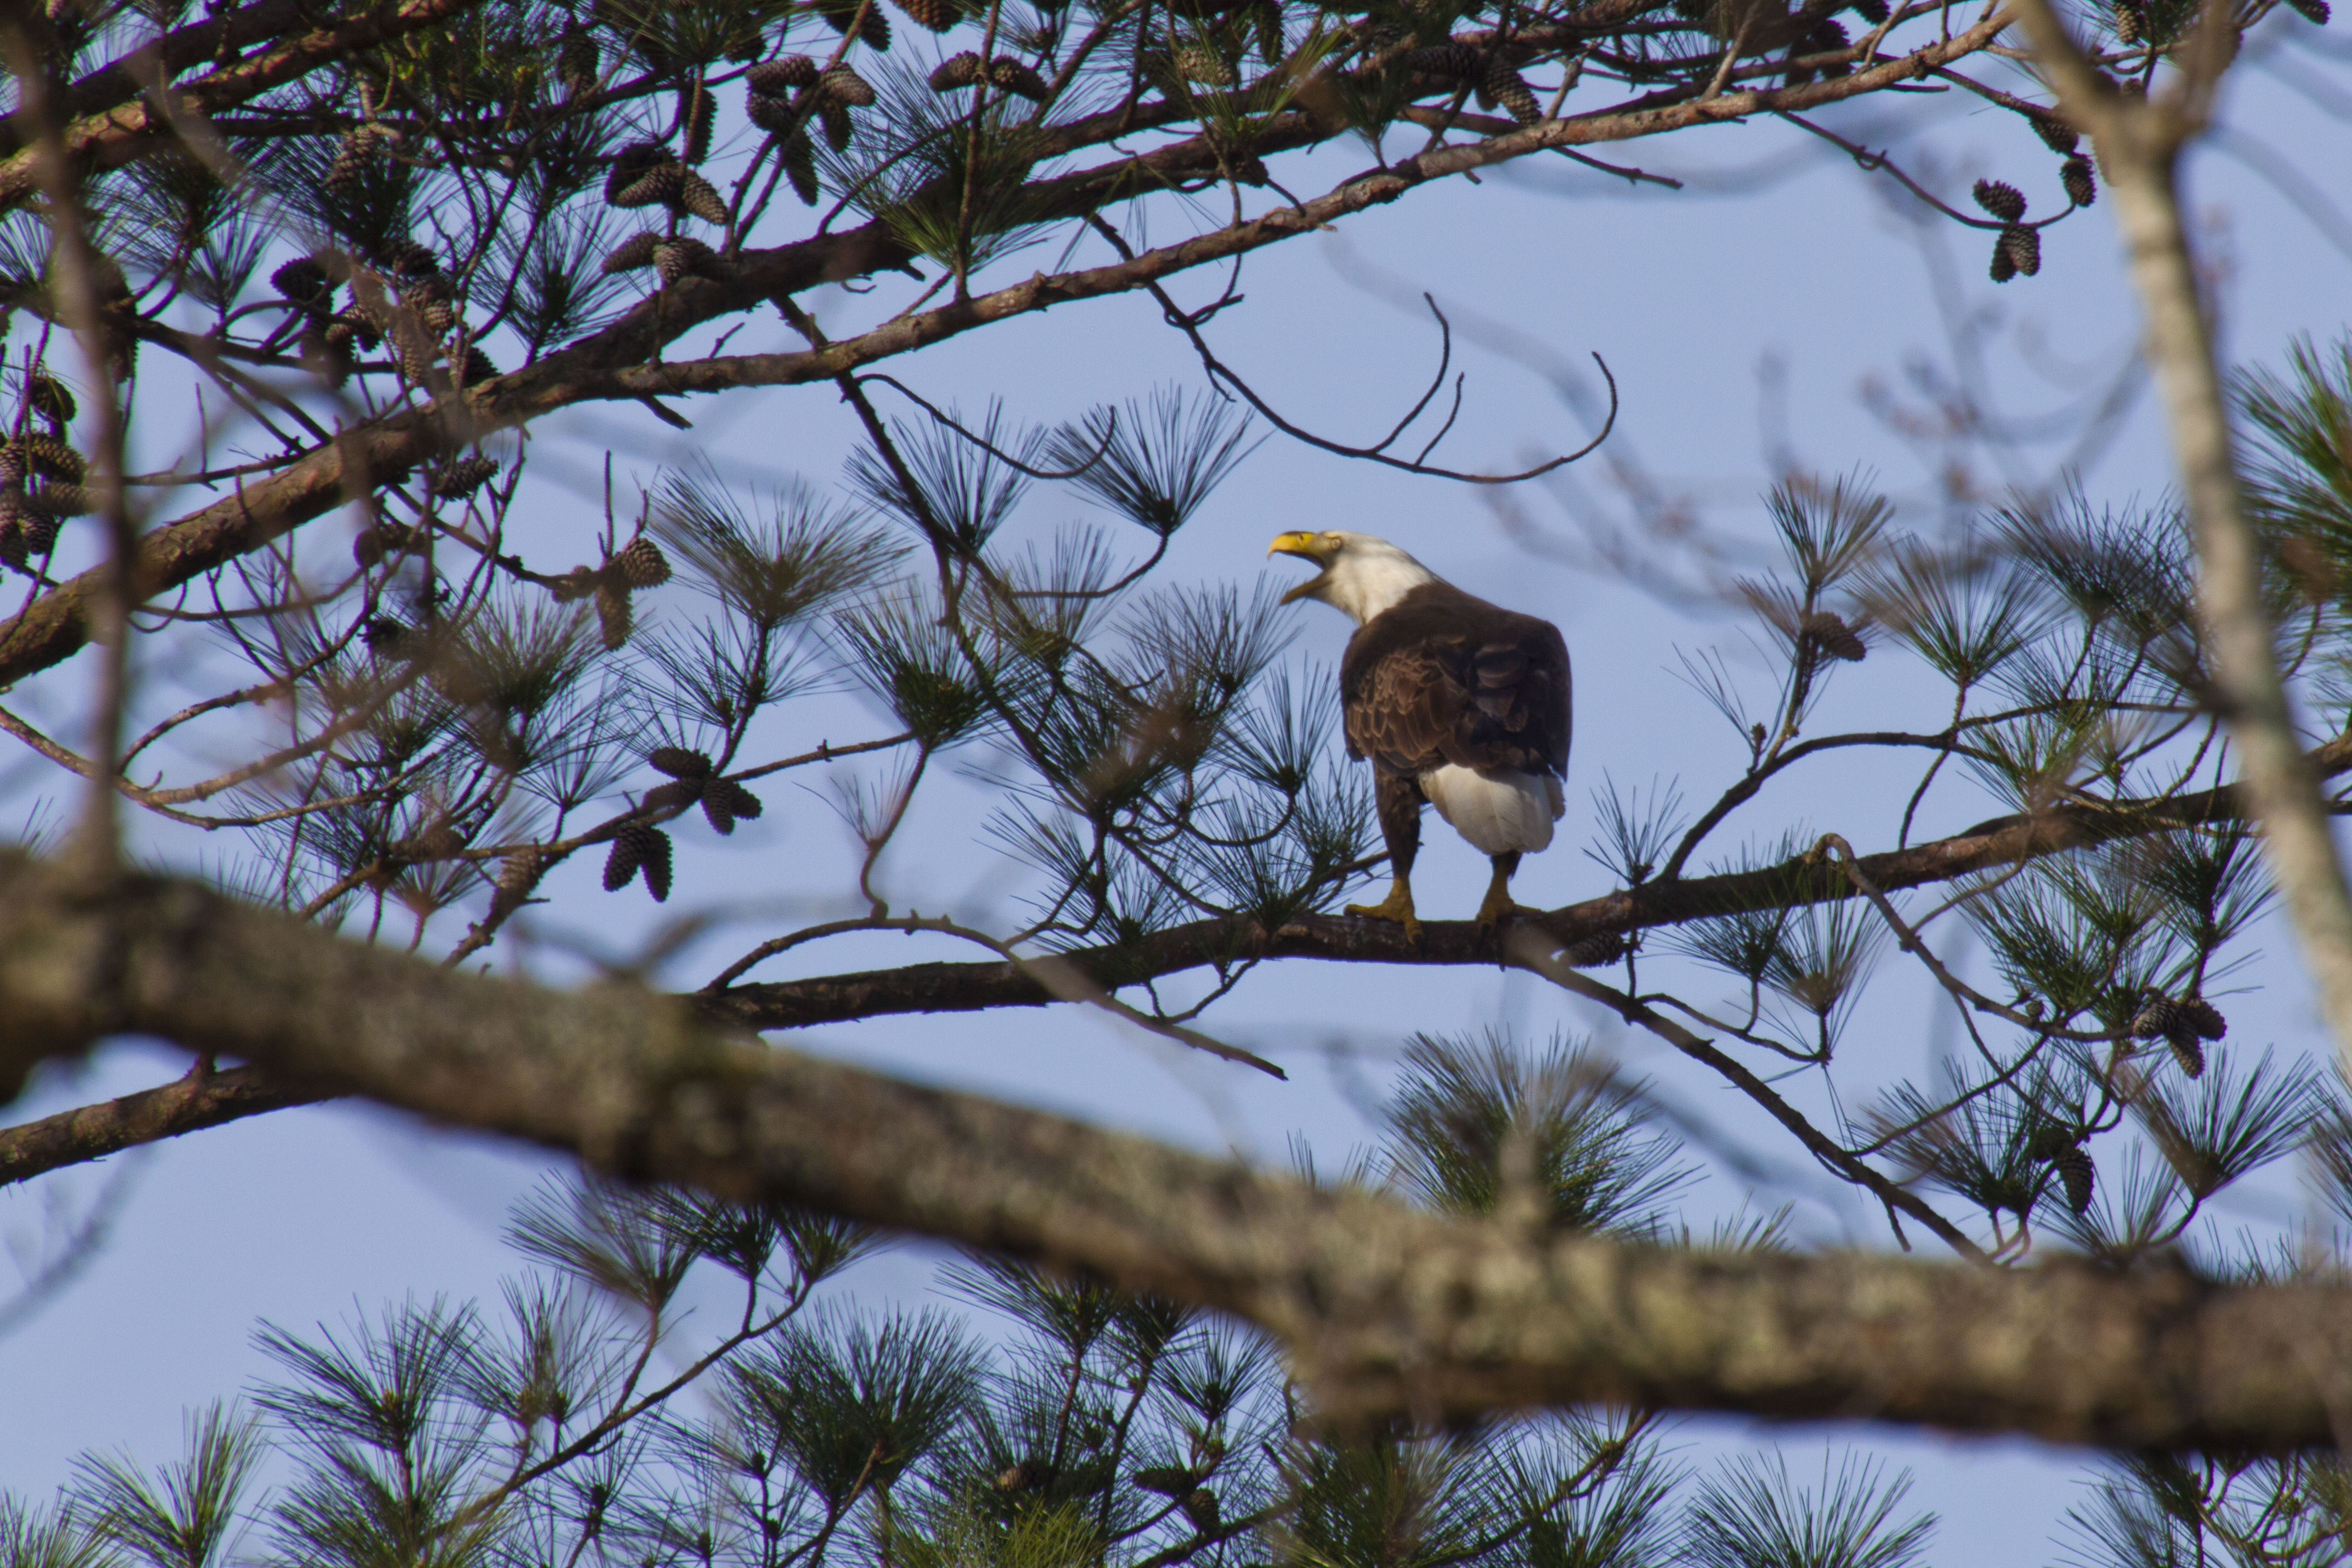 https://alabama-travel.s3.amazonaws.com/partners-uploads/photo/image/546511aefa74911fc1000017/bald_eagle_home_page.jpg